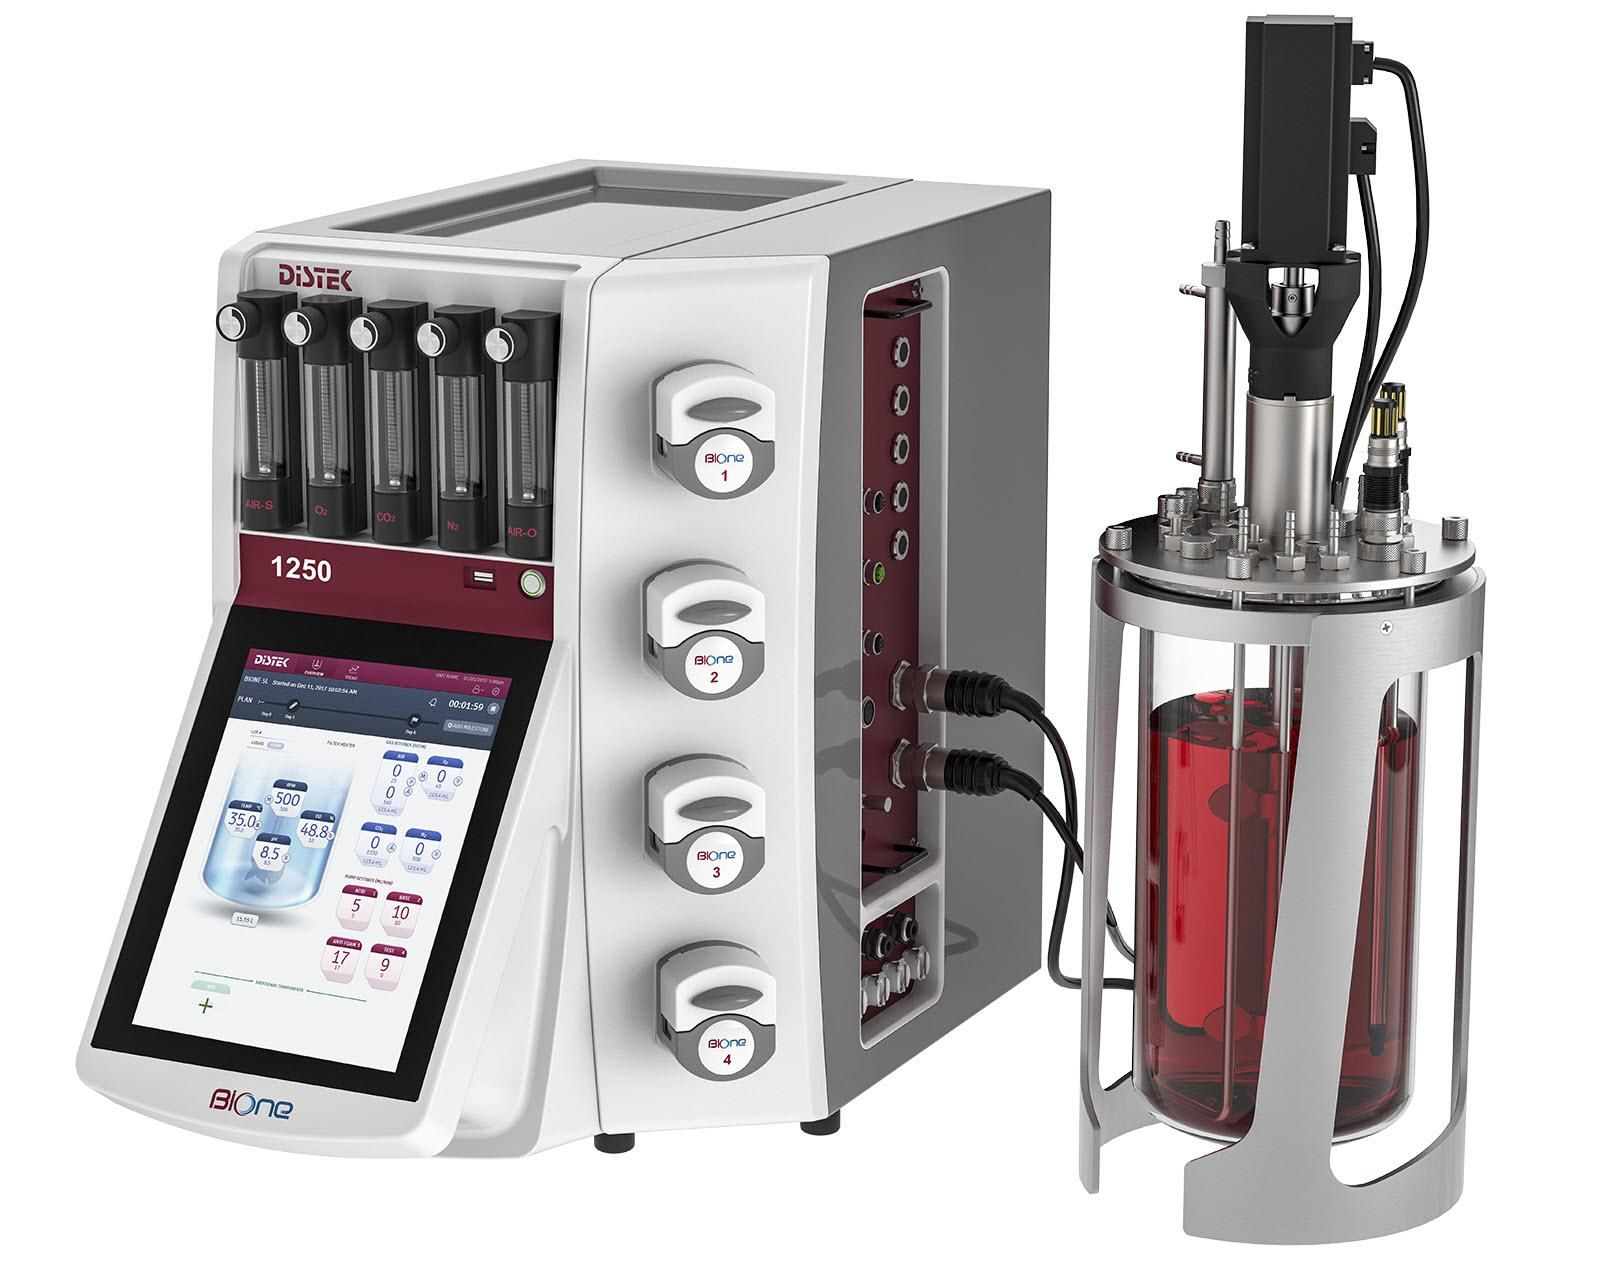 Distek, Inc. Releases BIOne 1250 Bioprocess Control Station